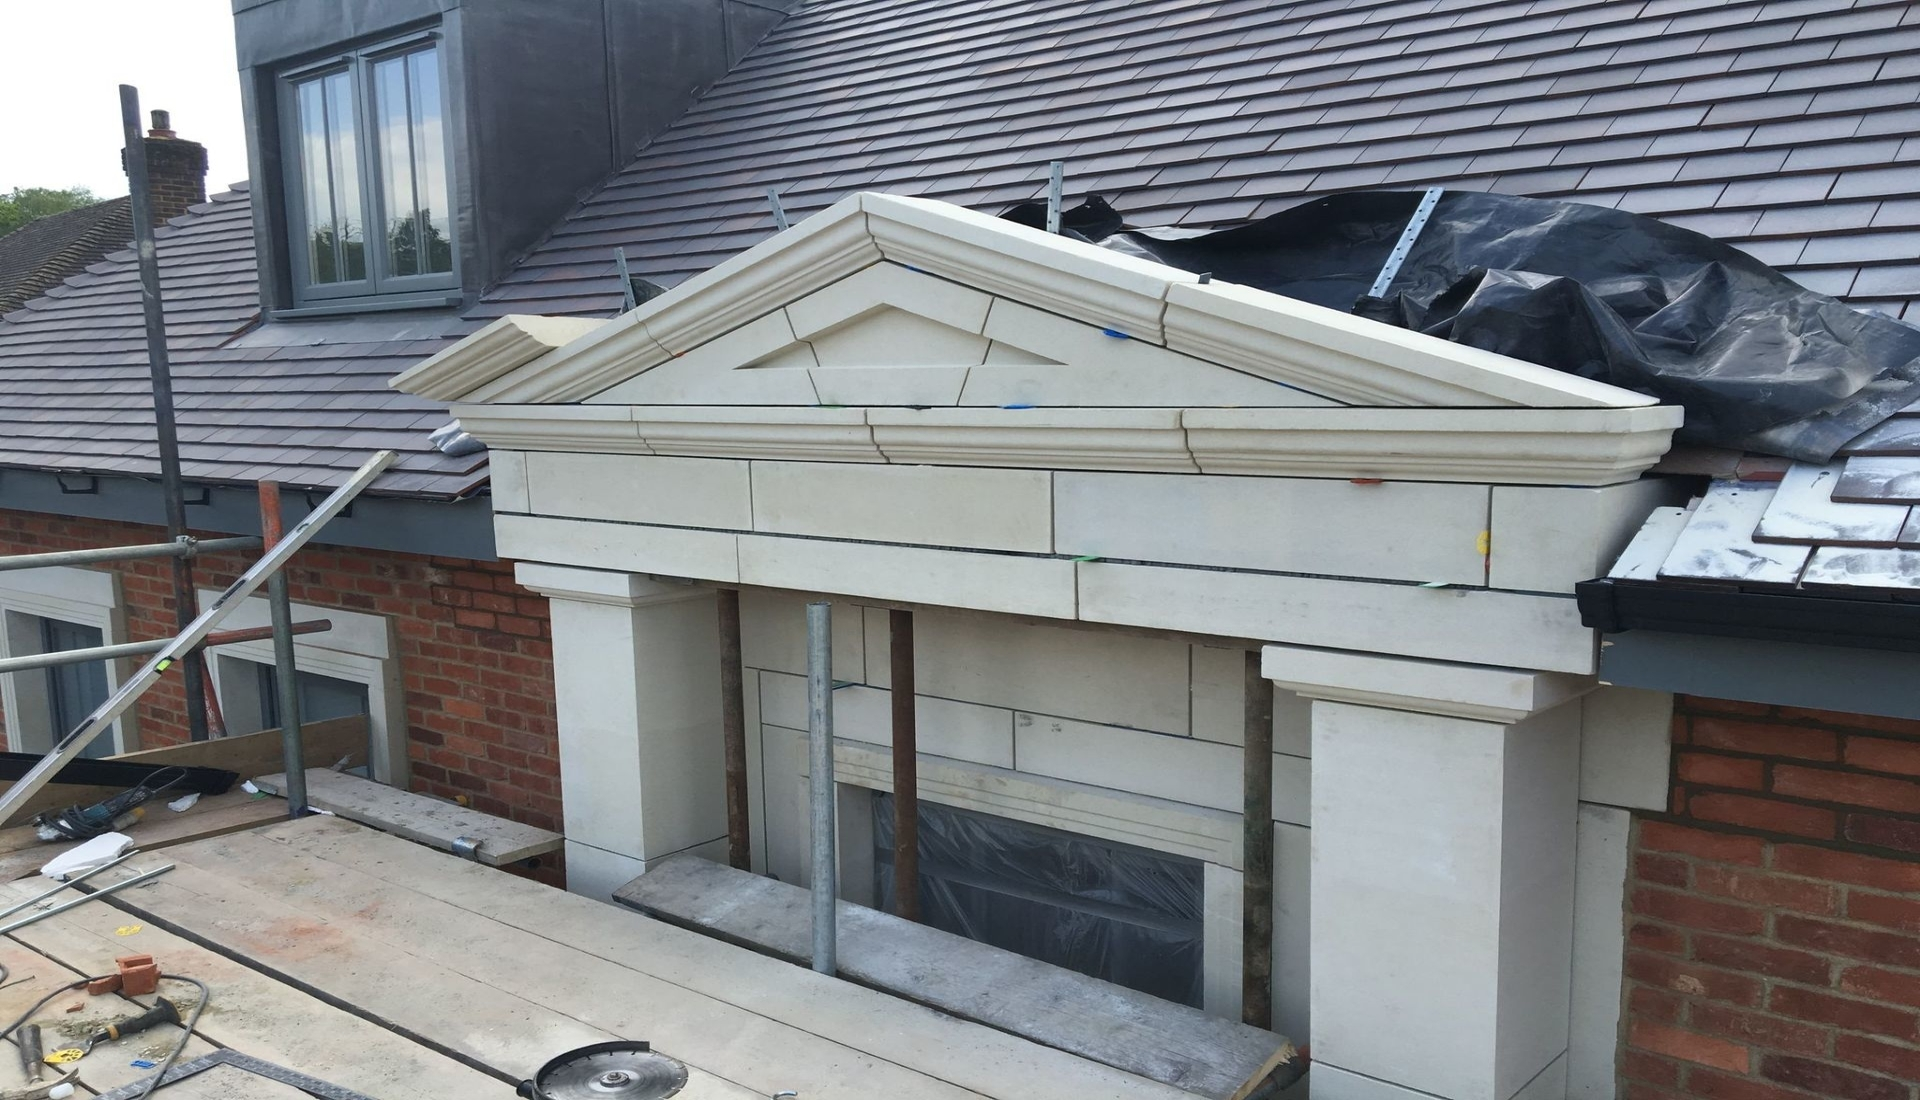 Cast Stone Porticos - Expert & Quality Craftsmanship by Malling Masonry Stonework & Restoration Specialists in Kent